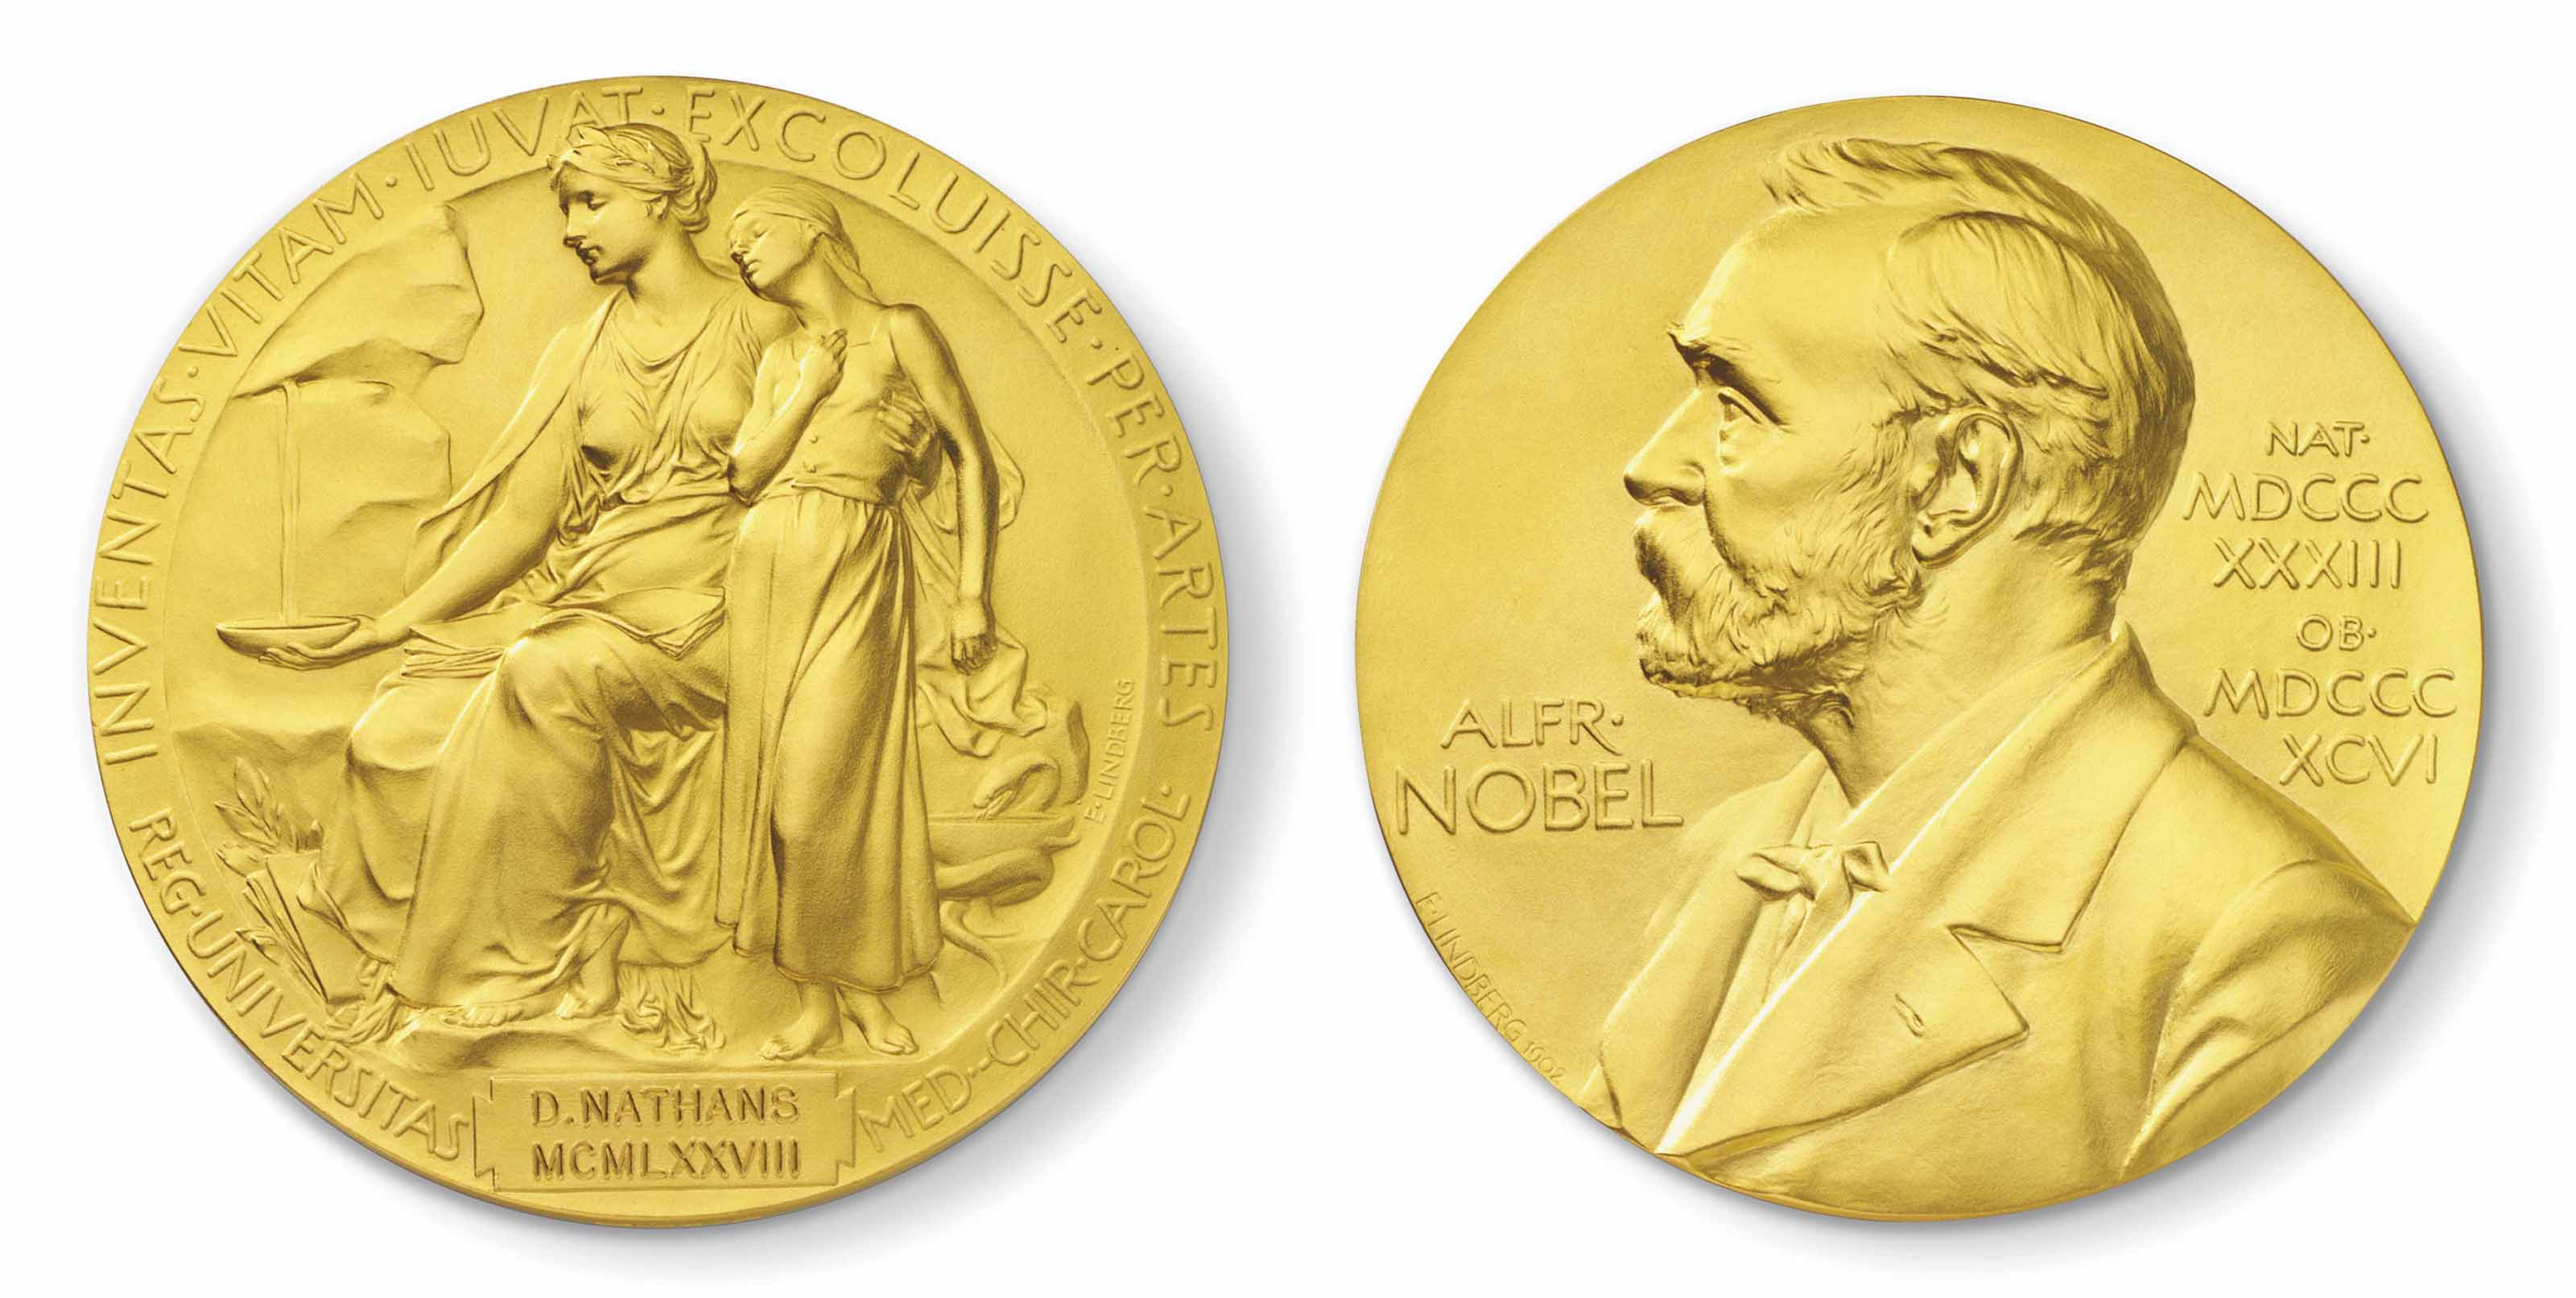 """The 1978 Nobel Prize in Physiology or Medicine awarded to Daniel Nathans for his role in """"the discovery of restriction enzymes and their application to problems of molecular genetics,"""" being the first major tool of the genetics revolution and central to the field of molecular biology."""